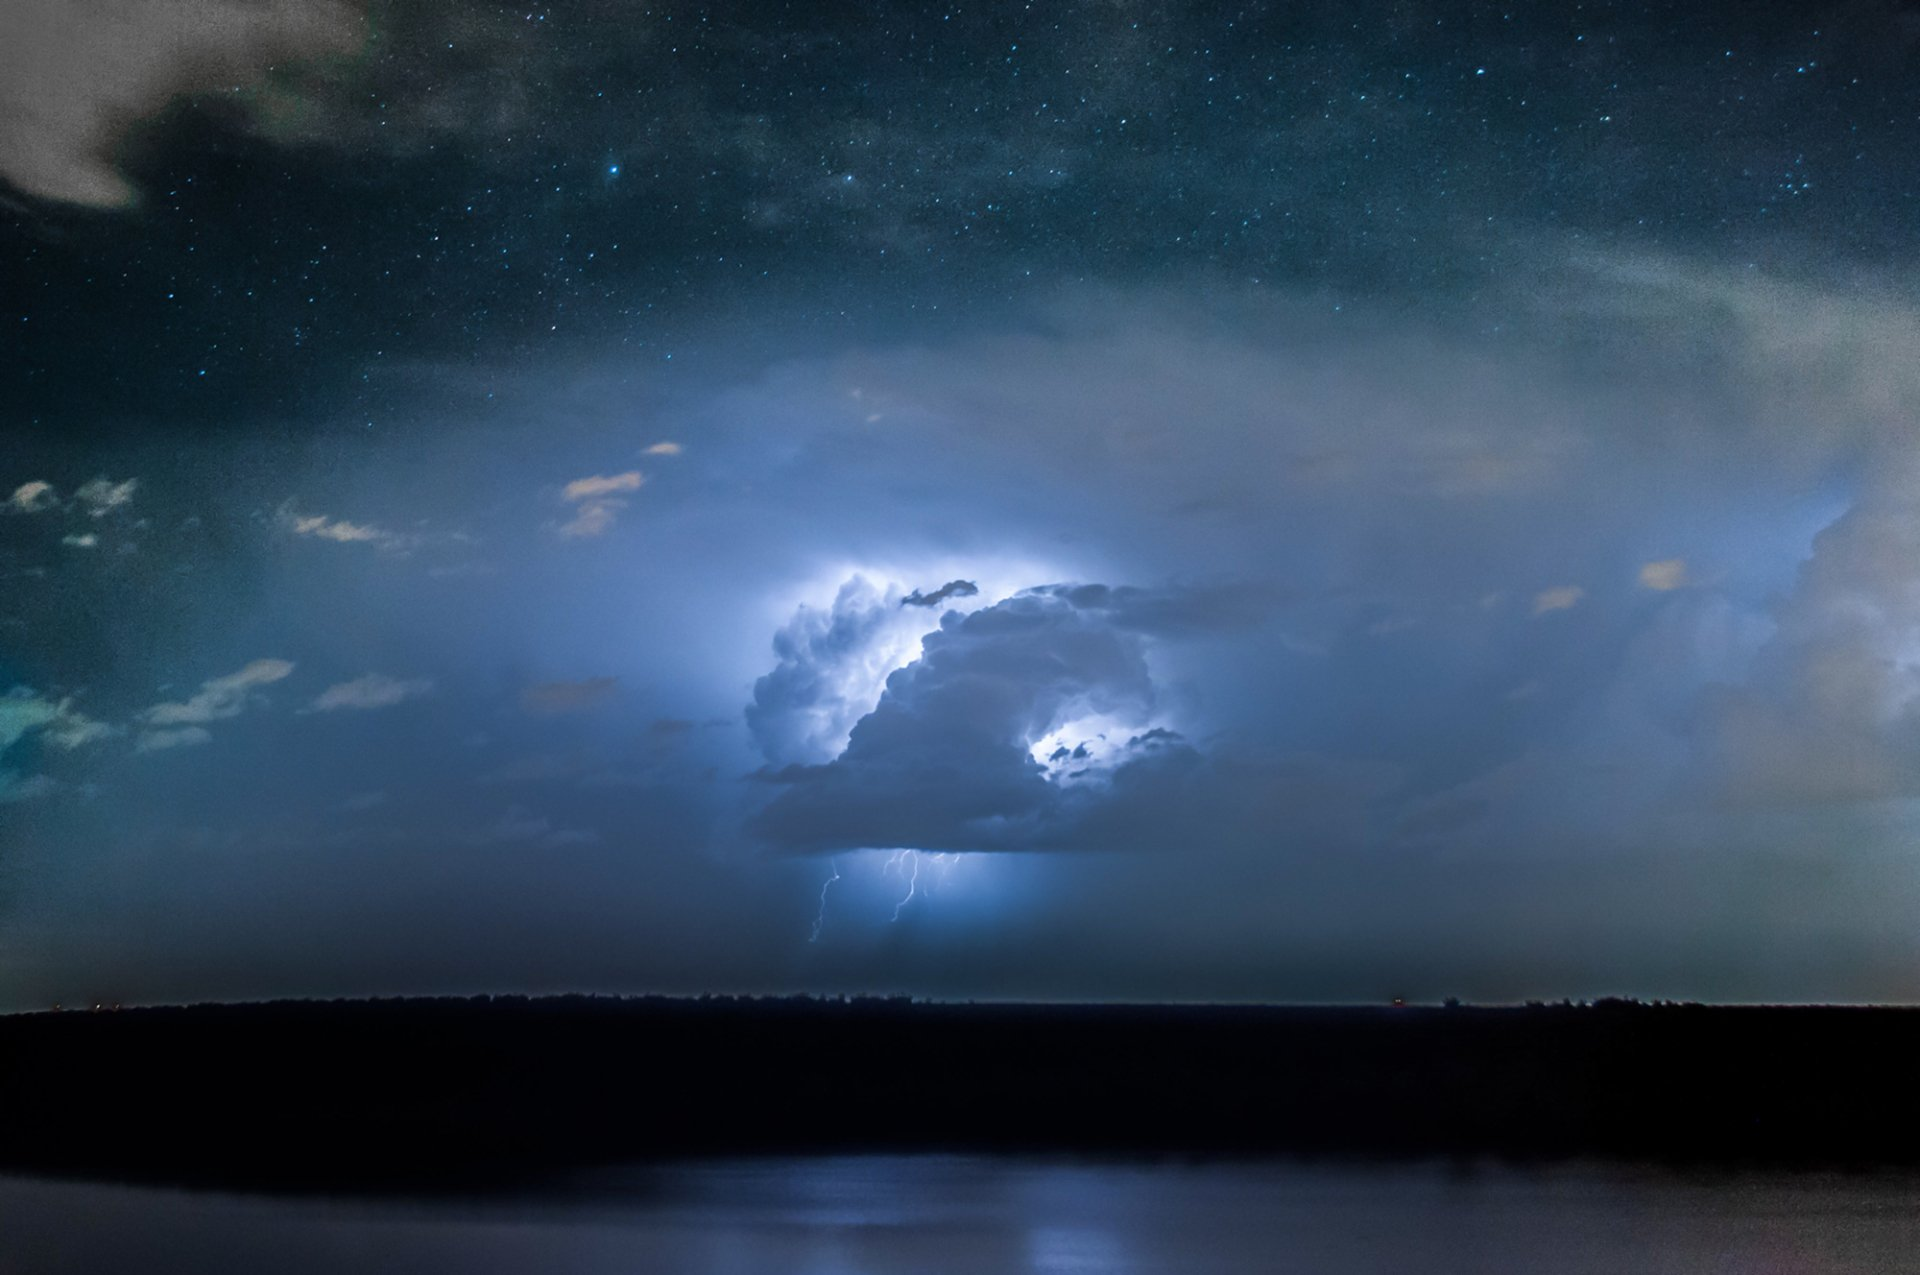 Clouds And Lightning On Starry Night 4k Ultra HD Wallpaper